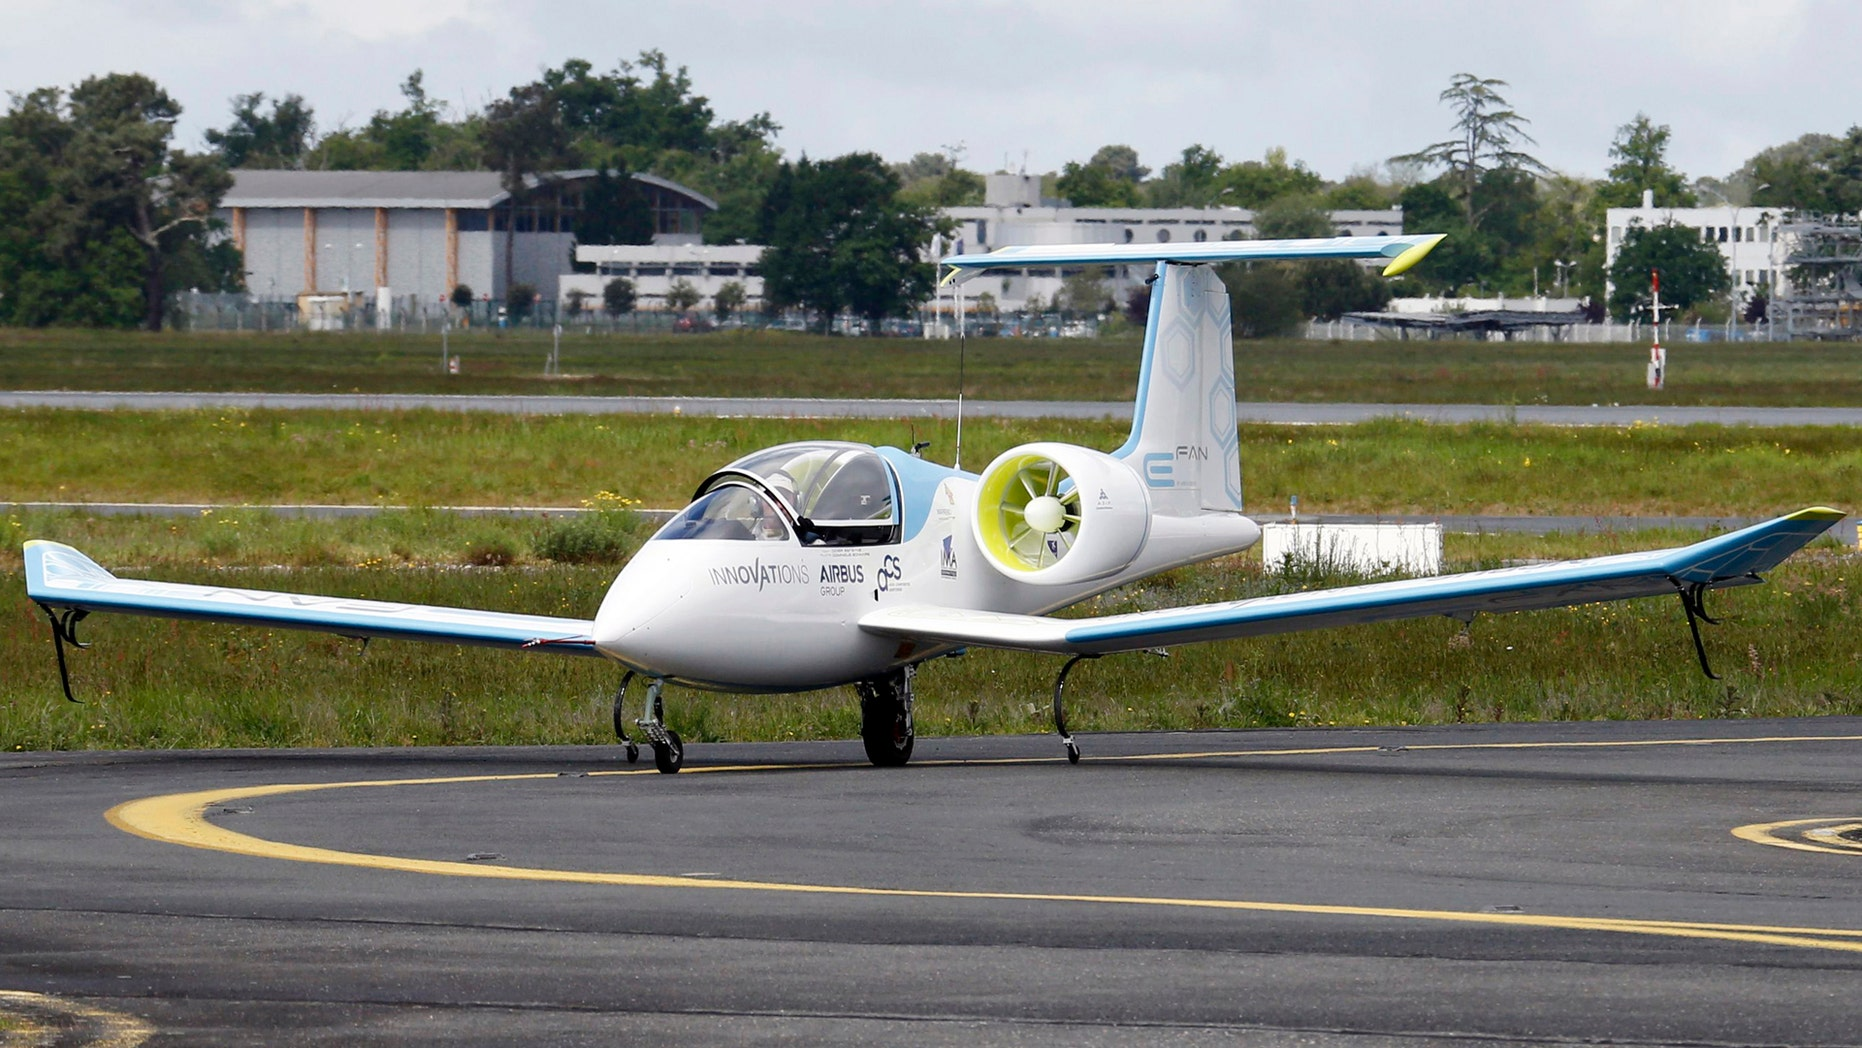 File photo: An E-Fan aircraft is seen on the tarmac for its first public flight during the e-Aircraft Day at the Bordeaux Merignac airport, southwestern France, April 25, 2014. The all-electric plane E-Fan, developed by Airbus Group, is 6.7 metres long with a 9.5 metre wingspan, and has two electric turbines with a total power of 60kW. Its has a cruising speed of 160 km/h (99 mph) for about an hour of flight time. (REUTERS/Regis Duvignau)